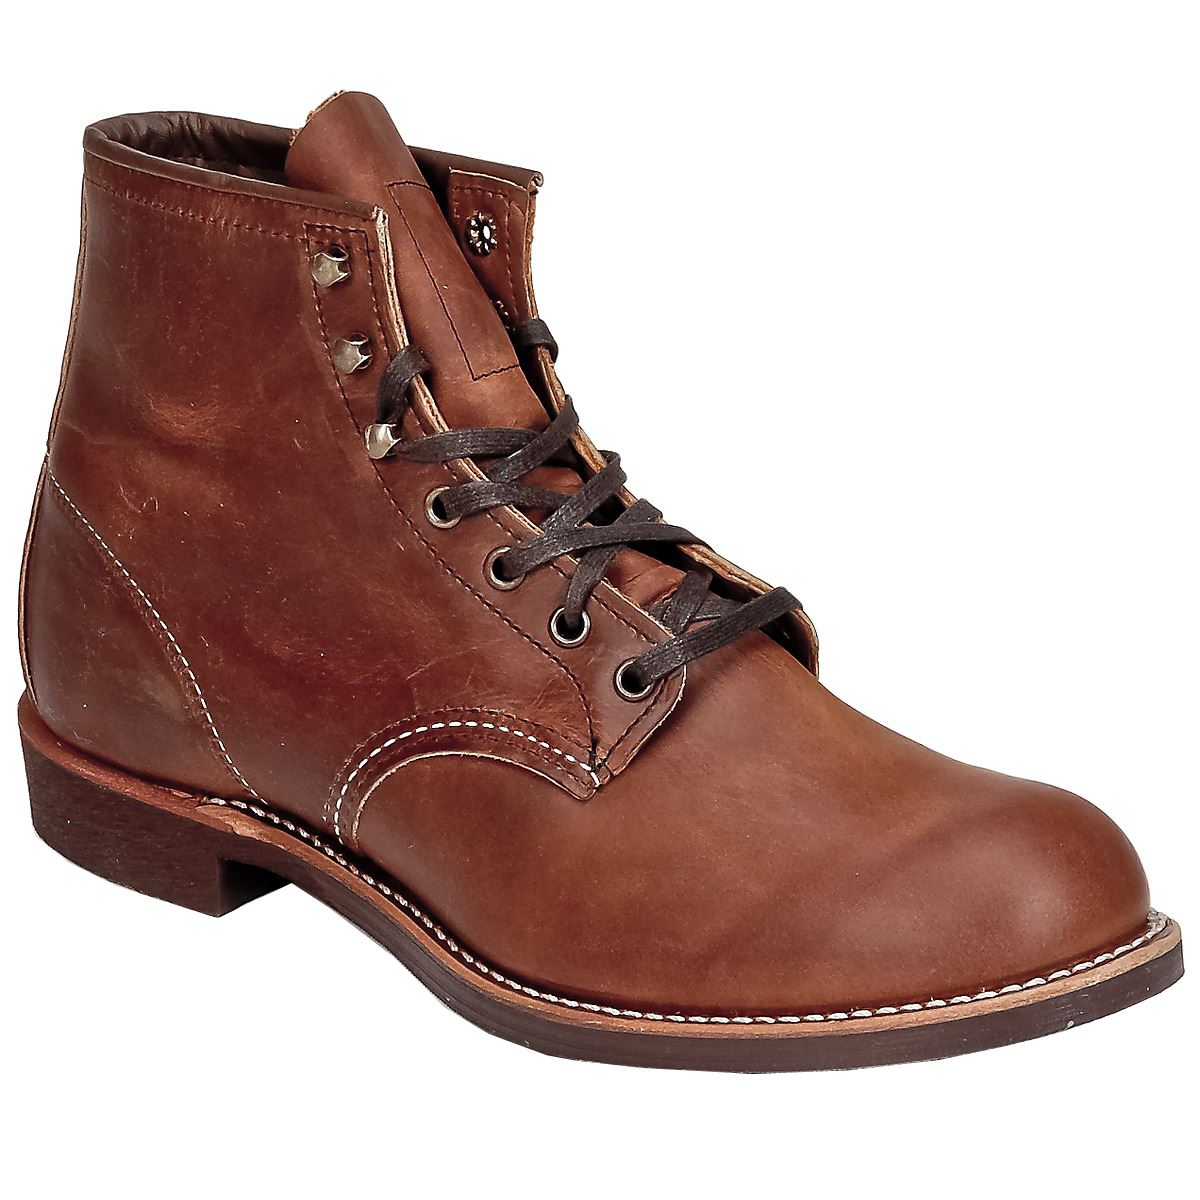 Redwing ankle boot Blacksmith model in mid brown leather